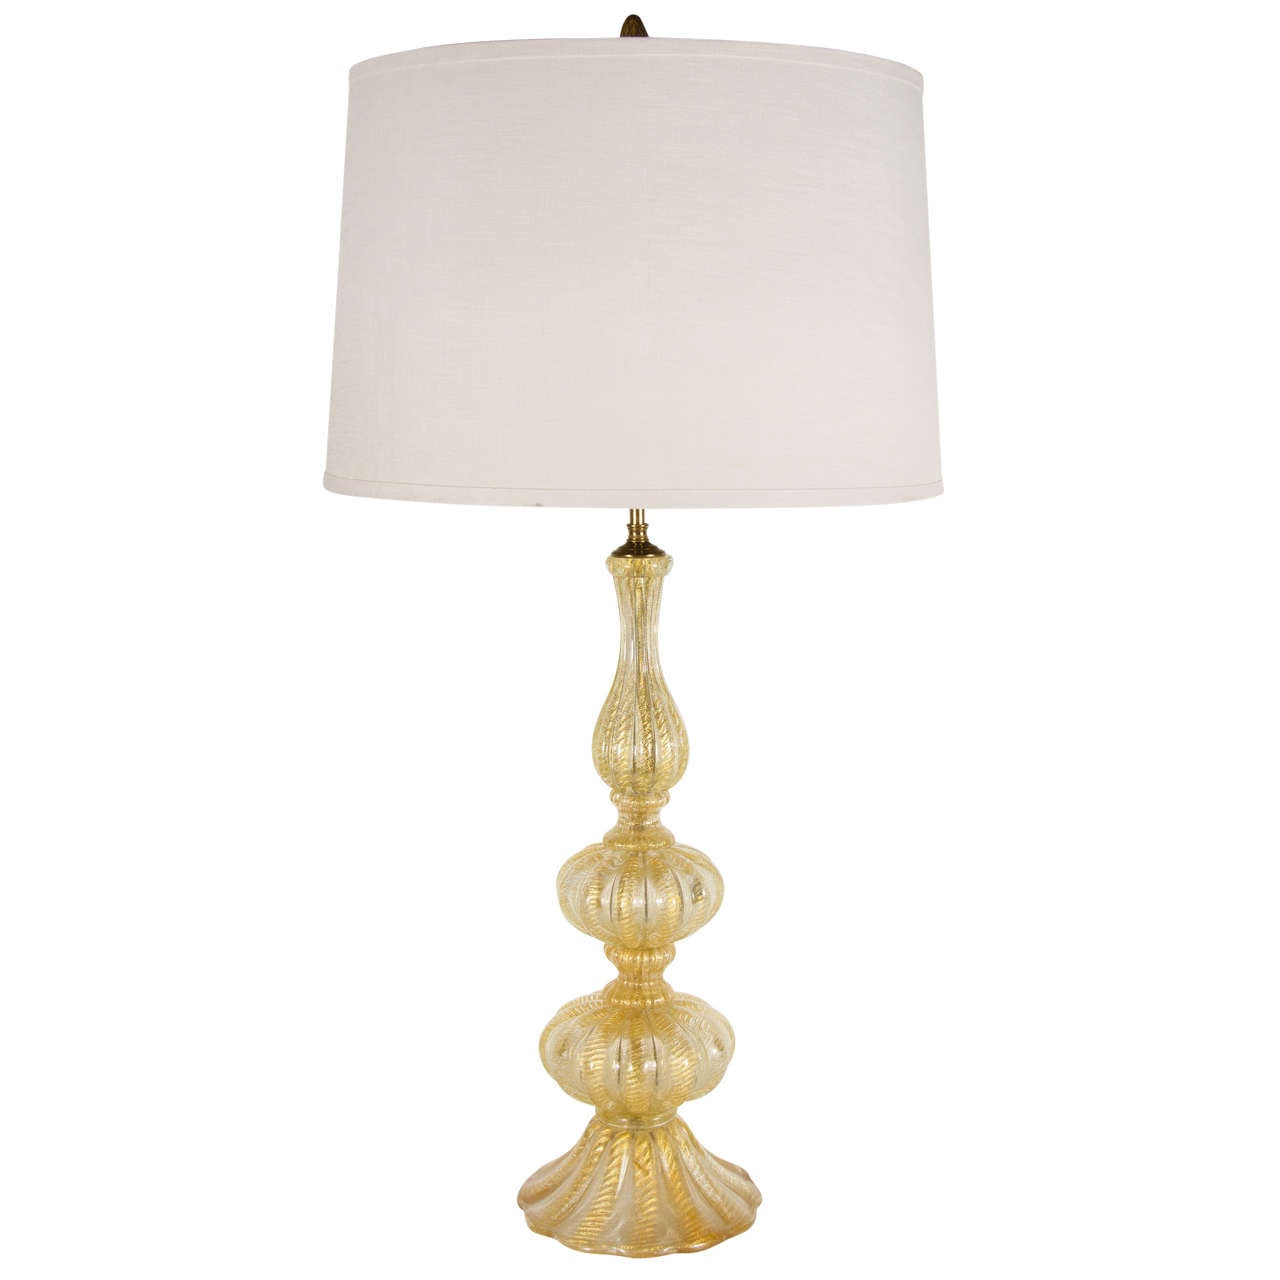 Mid-Century Modernist Hand-Blown Table Lamp by Barovier e Toso For Sale